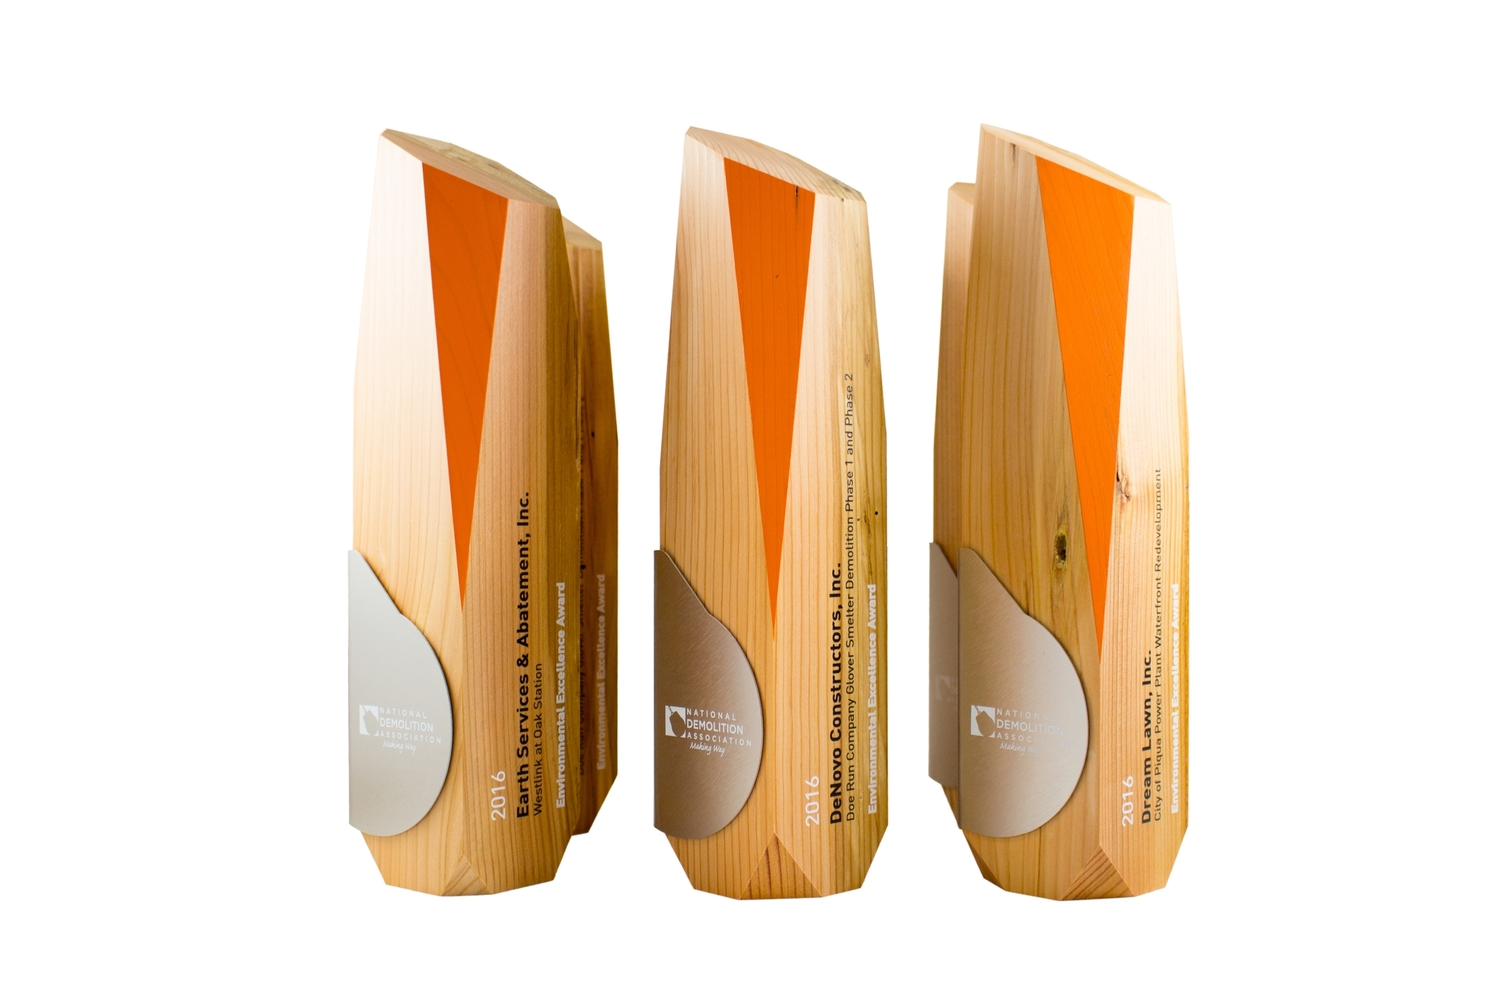 sustainable awards, eco awards, sustainable trophies, eco trophies, environmentally friendly awards and trophies.jpg